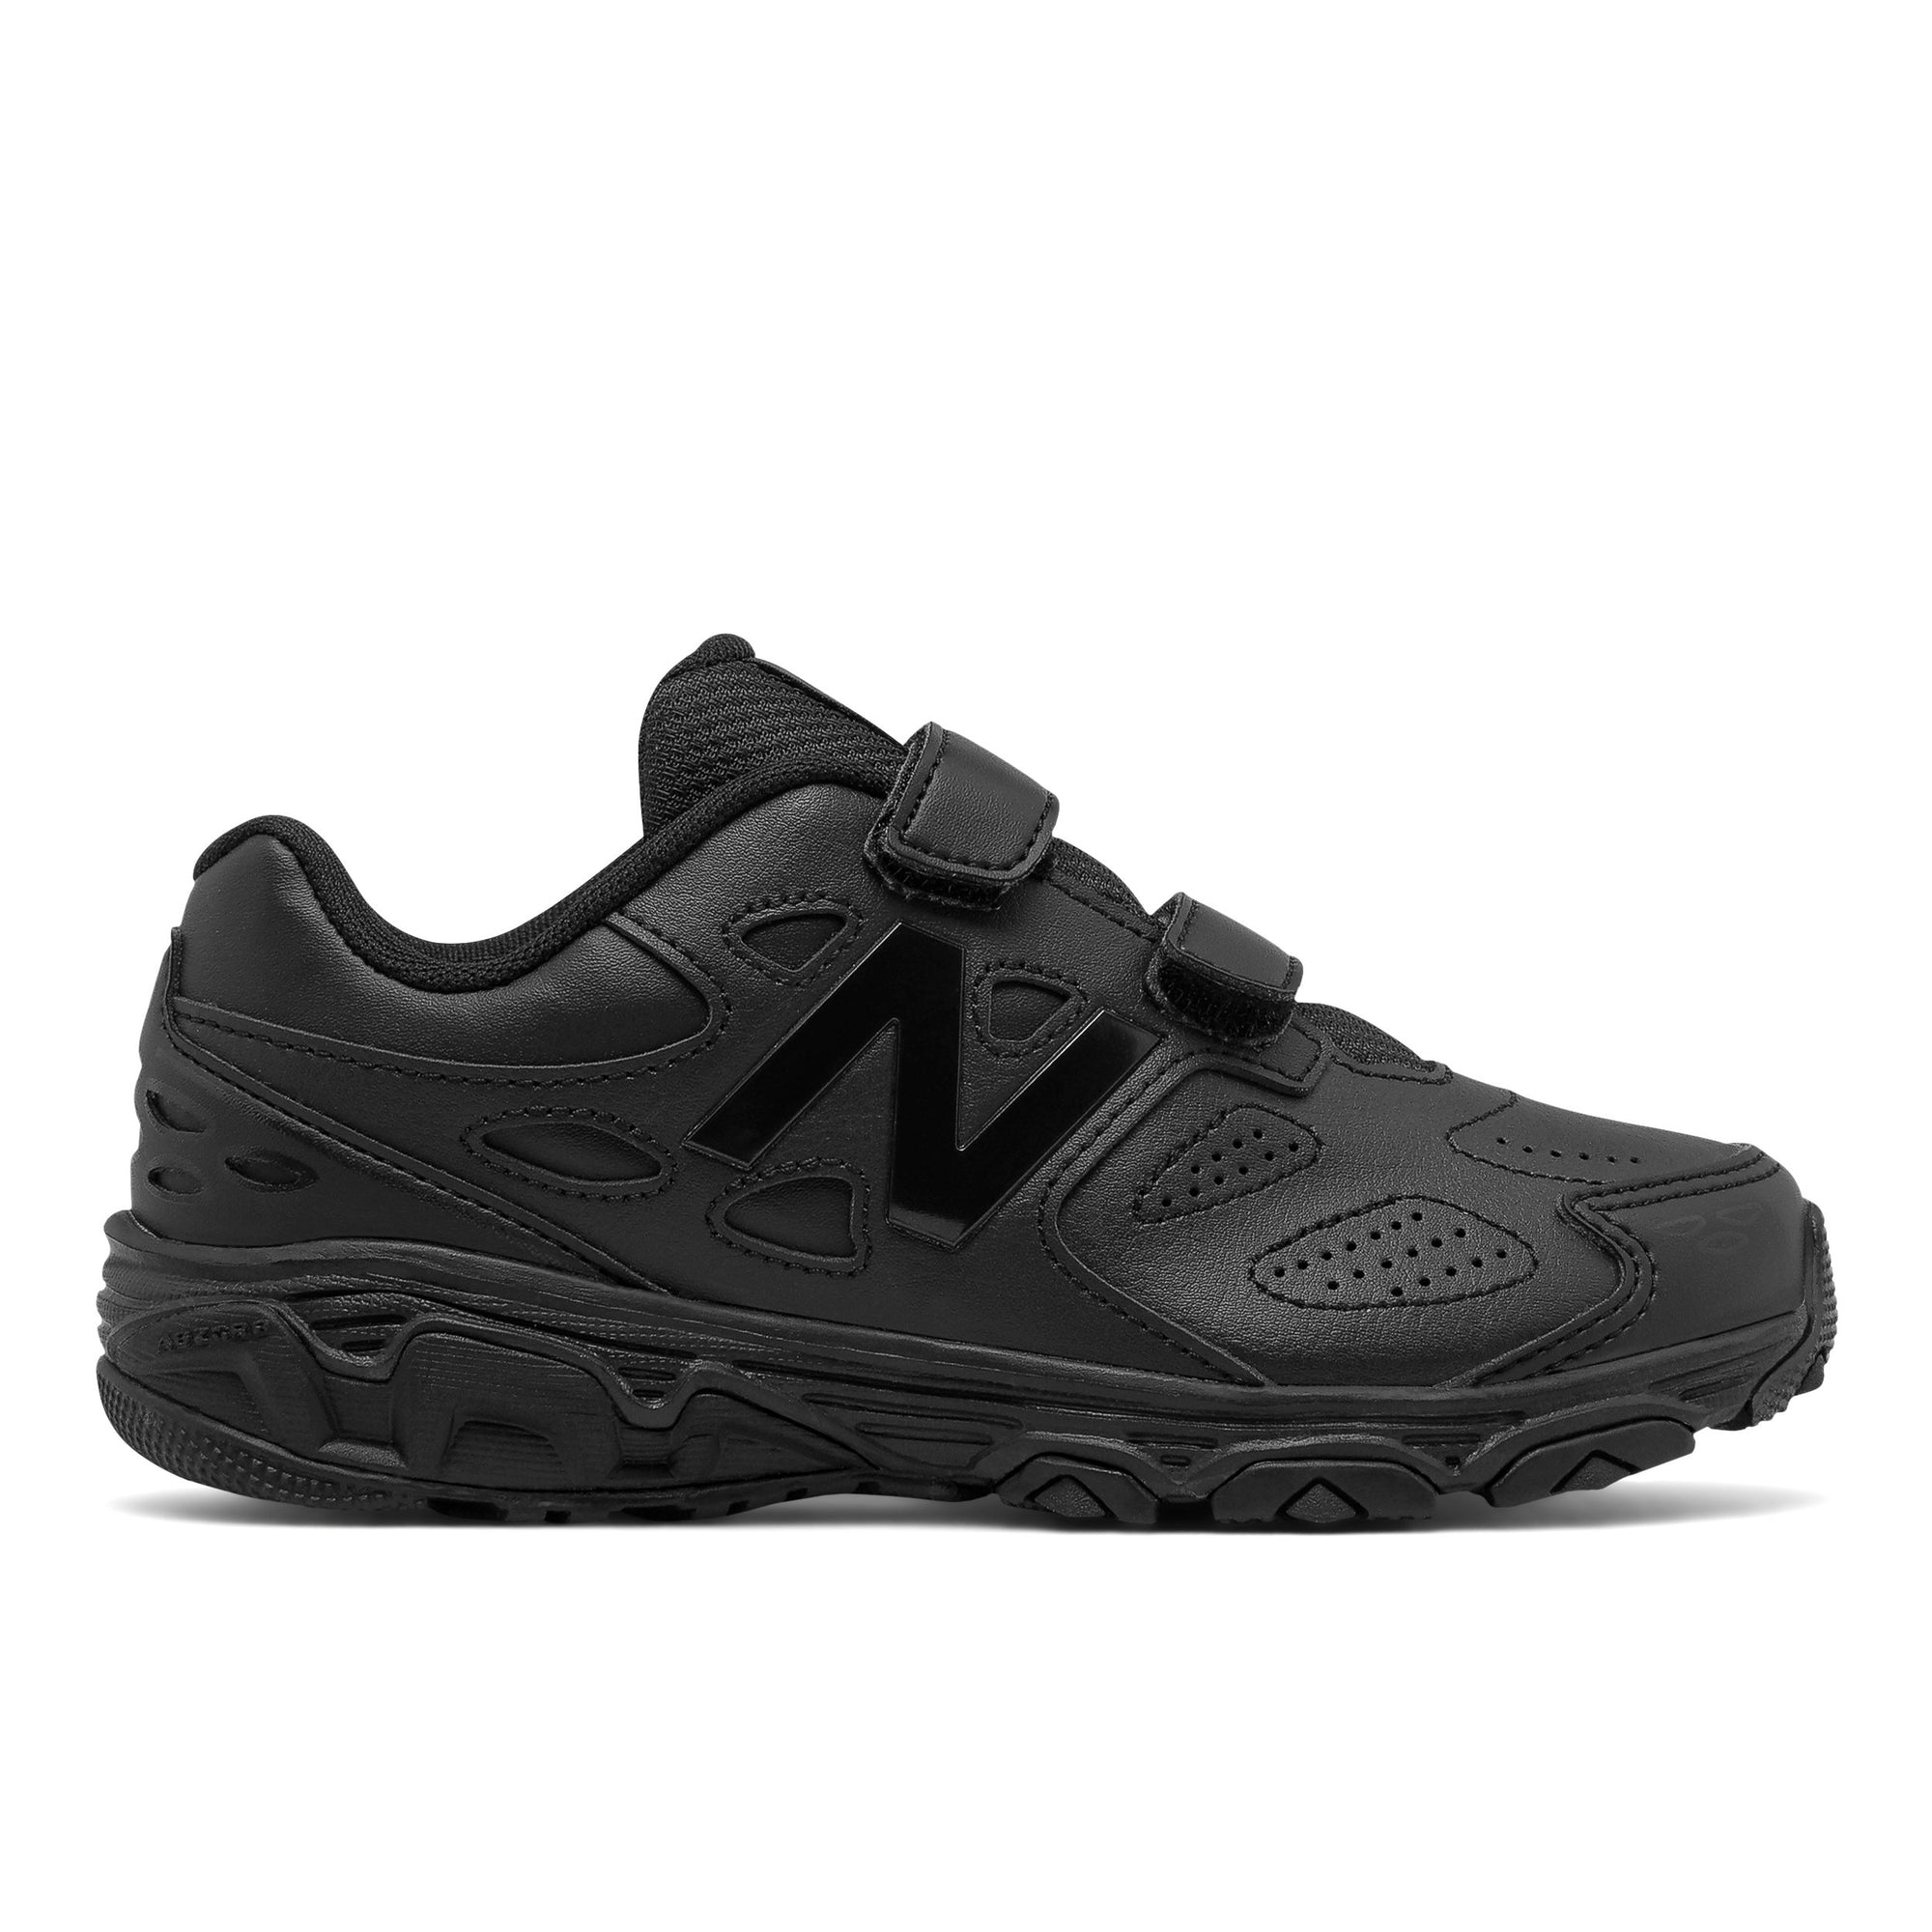 New Balance Kids 680v6 - Black SP-Footwear-Kids New Balance